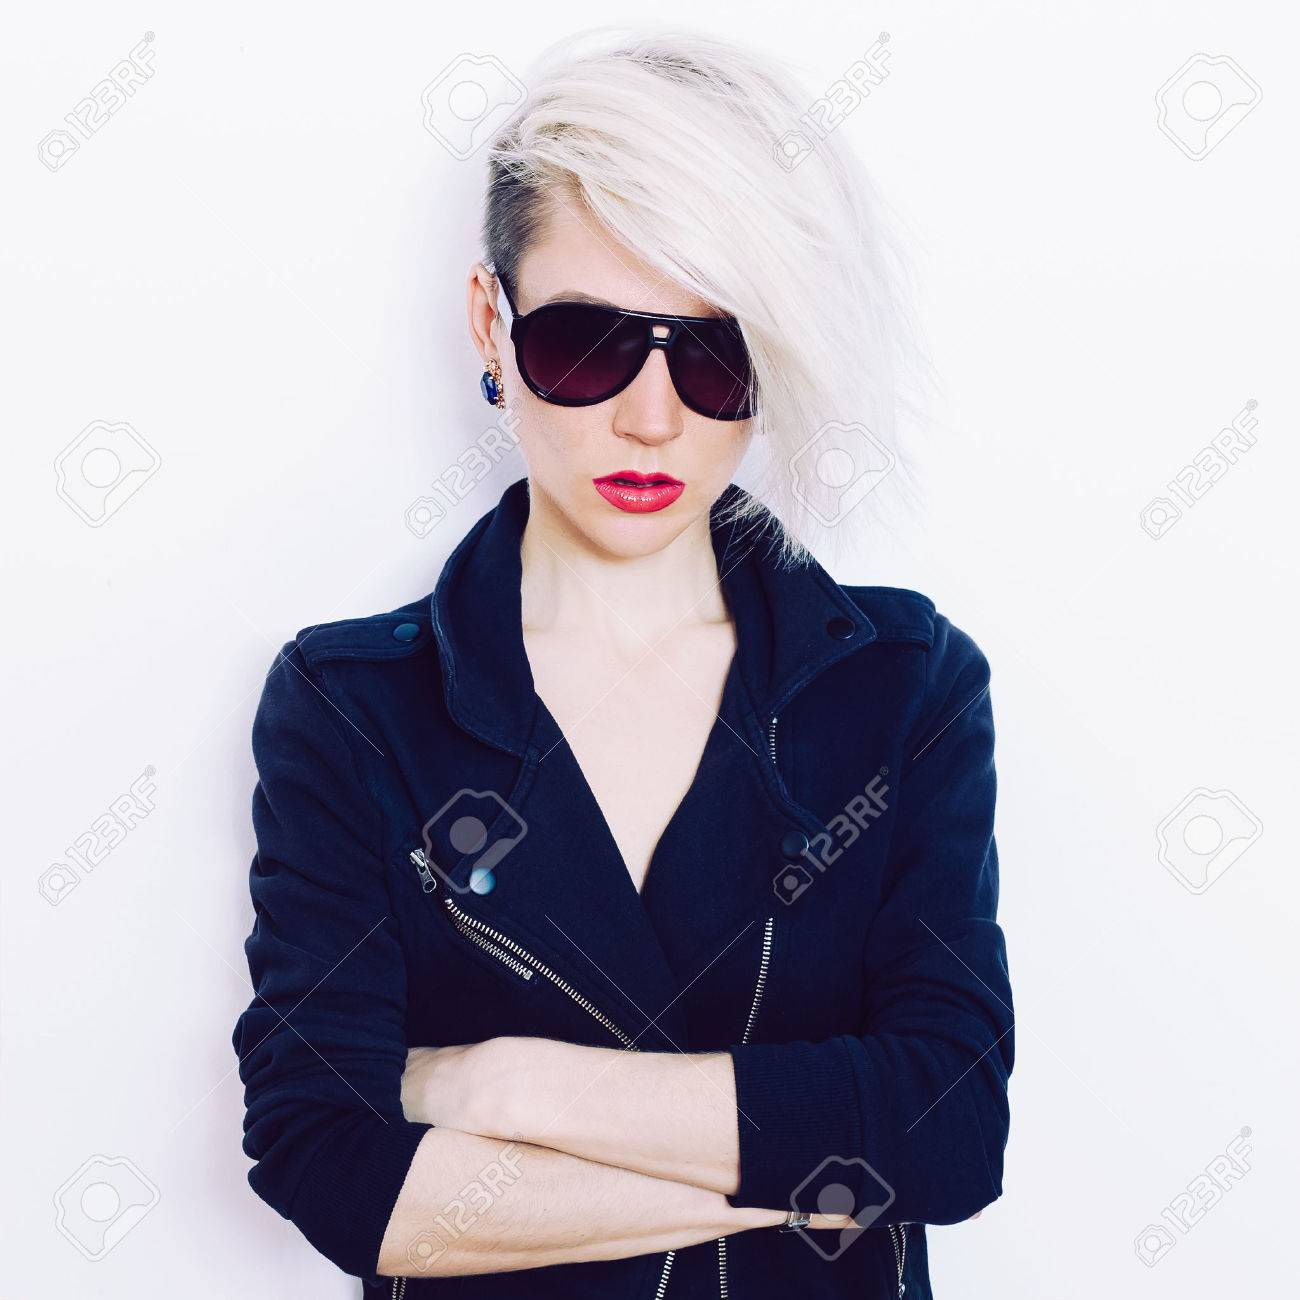 Blonde girl with trendy hairstyle and fashion sunglasses - 38635375